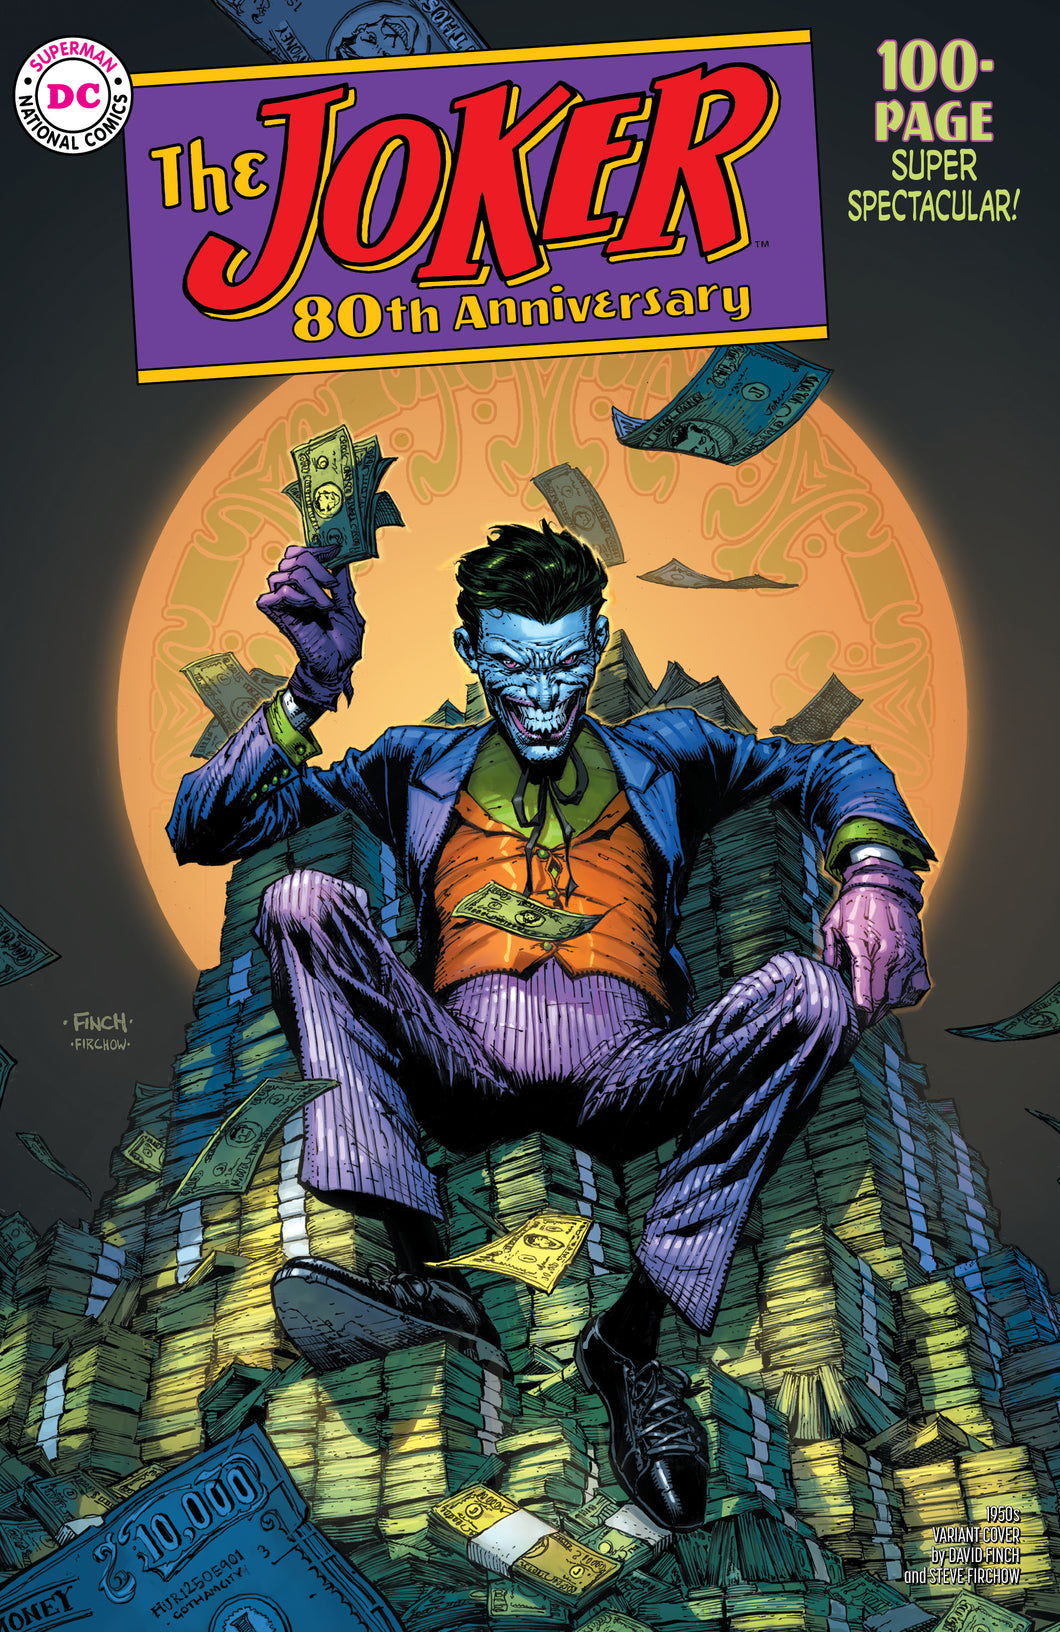 JOKER 80TH ANNIV 100 PAGE SUPER SPECT #1 1950S DAVID FINCH V - 2 Geeks Comics